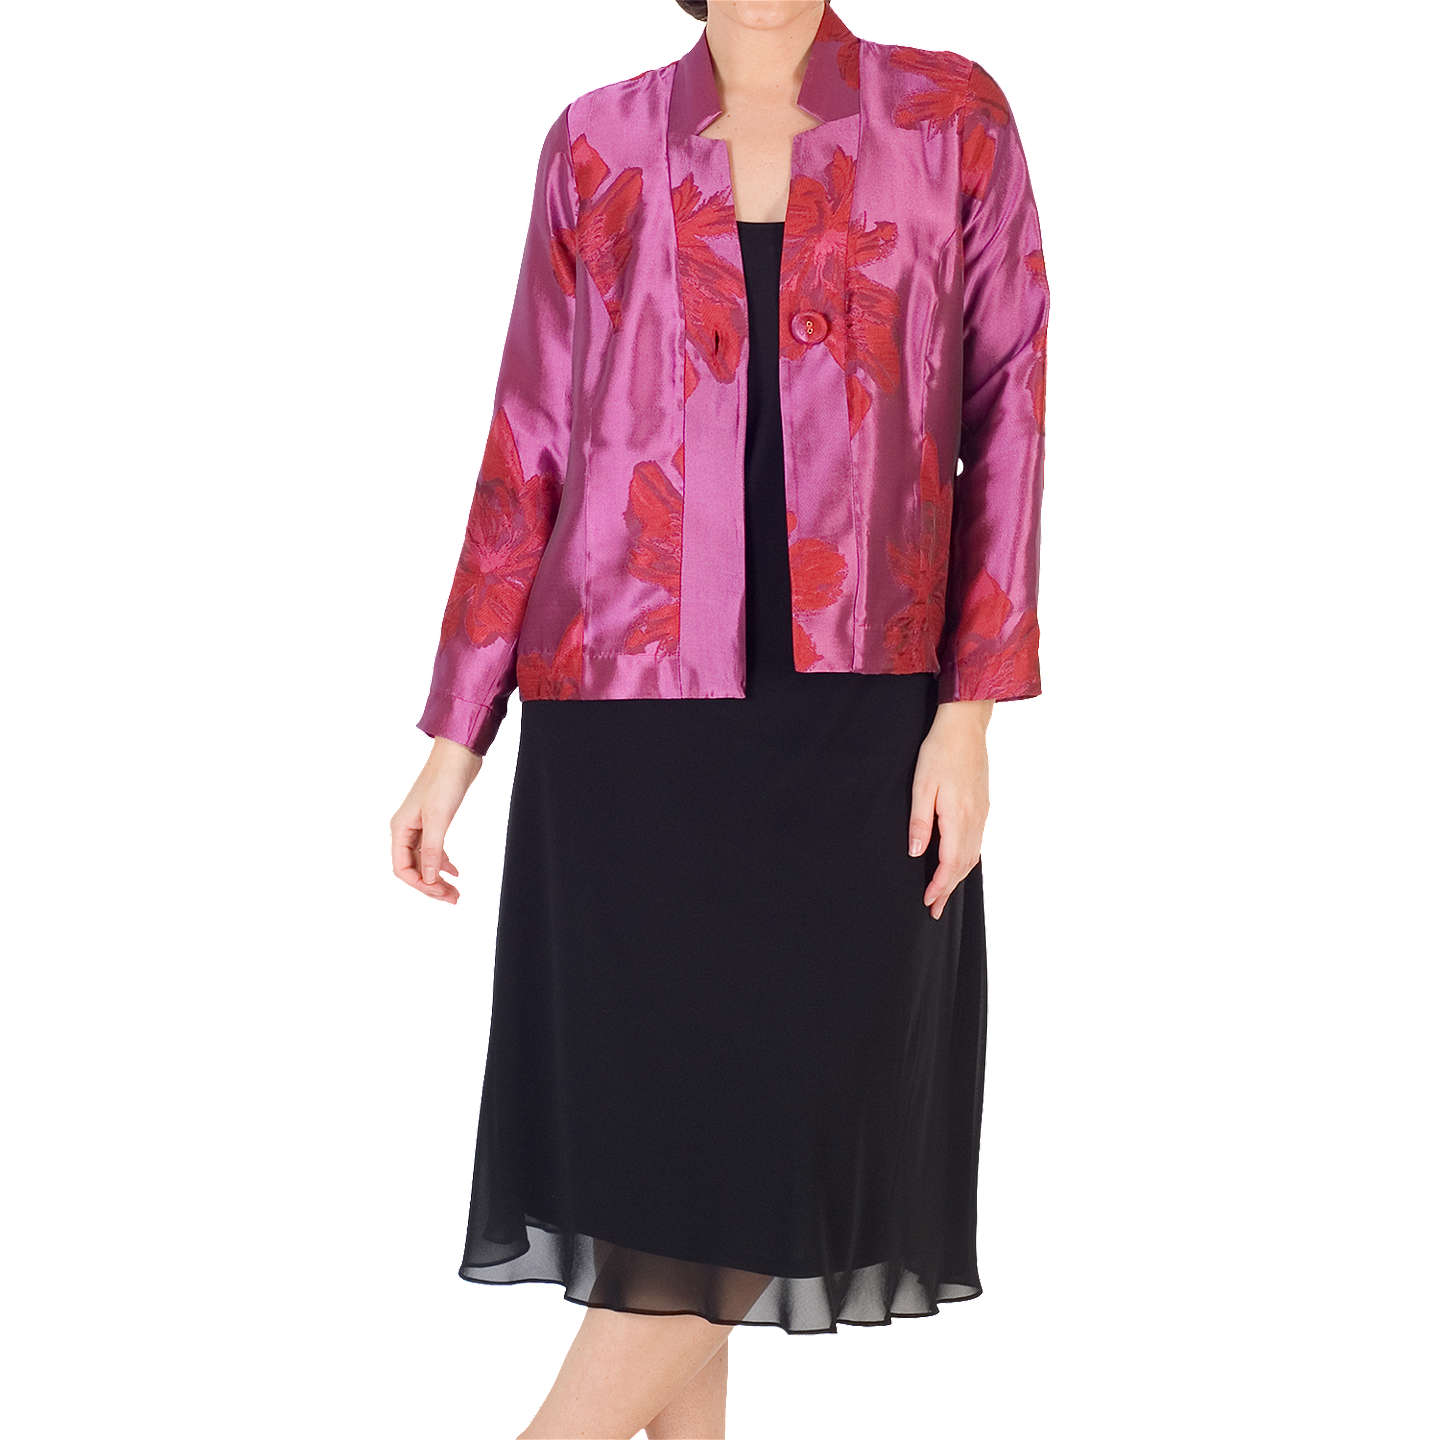 BuyChesca Floral Jacquard Jacket, Red/Hot Pink, 14 Online at johnlewis.com